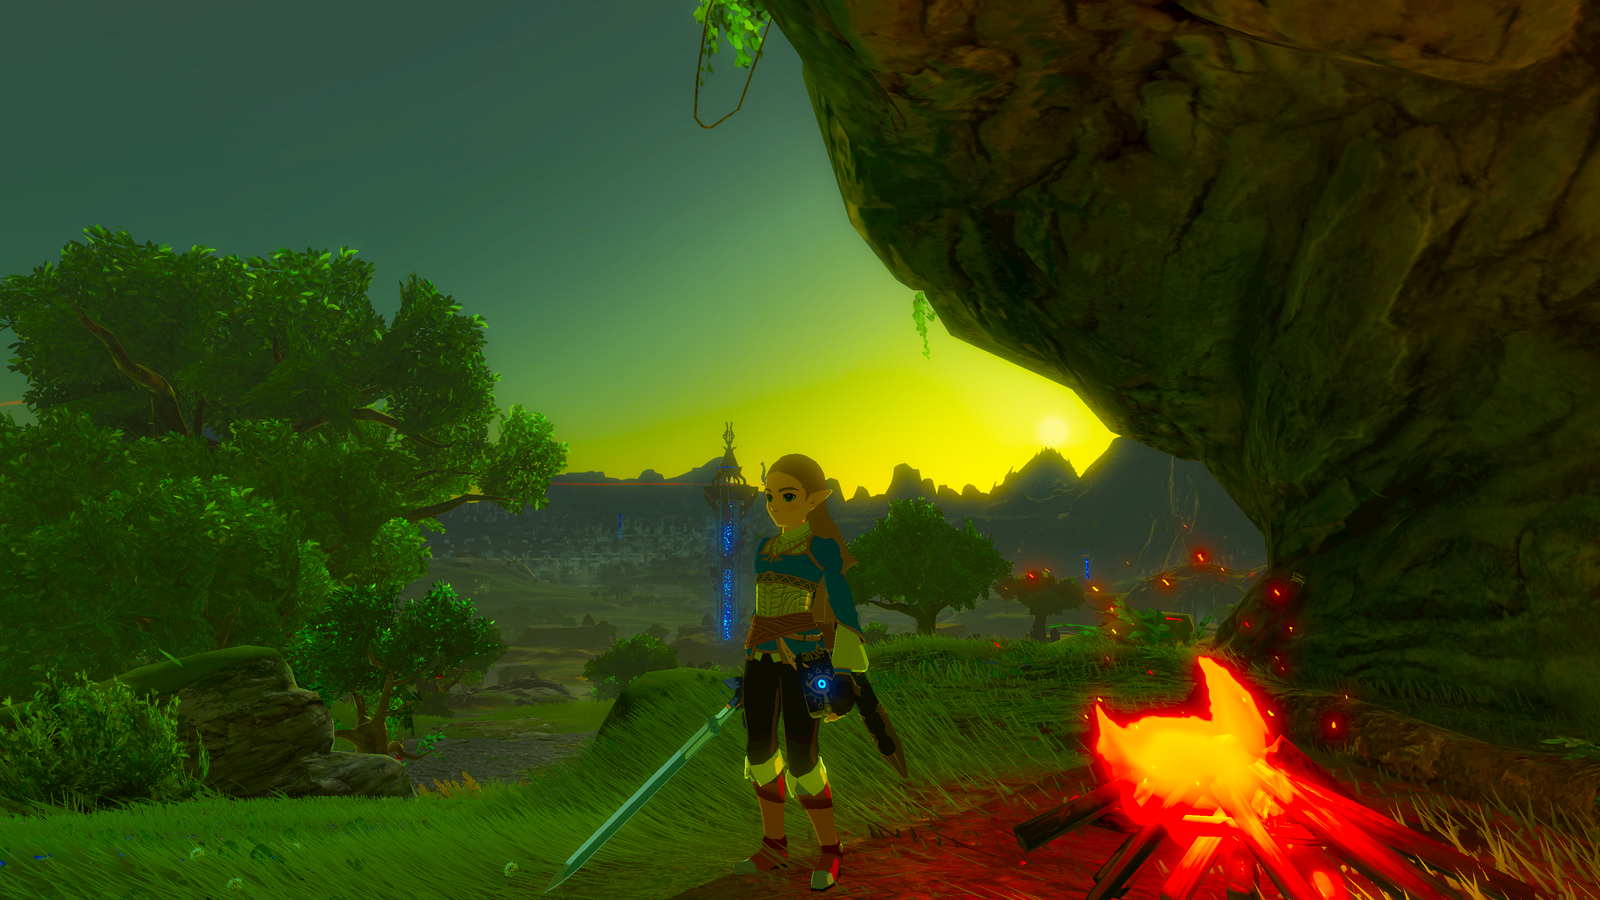 Image provided by the Zelda Conversion Project